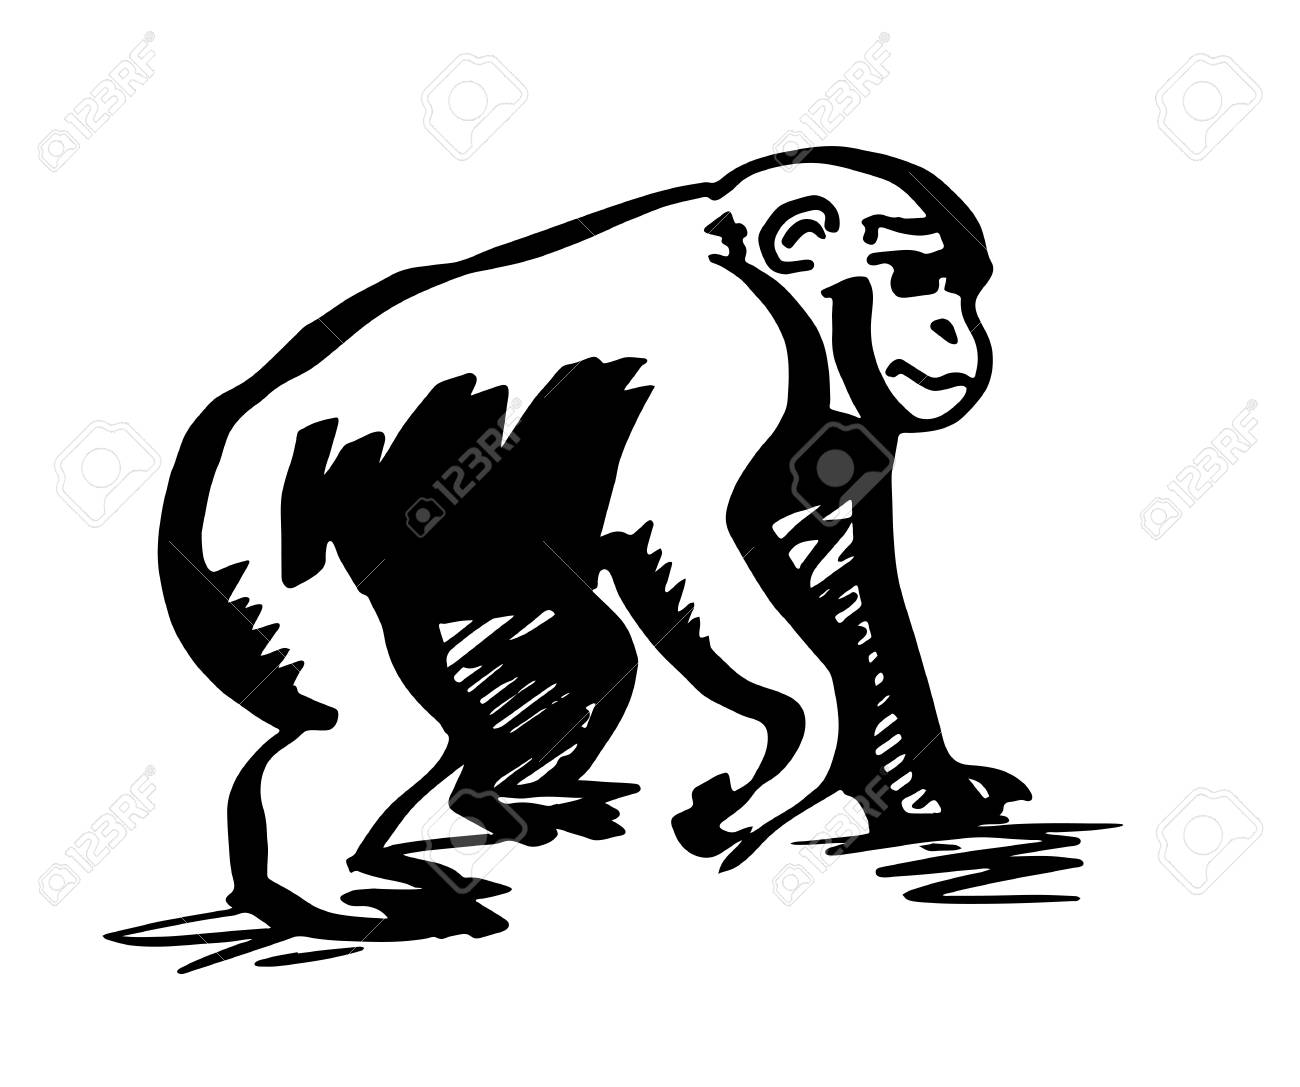 chimpanzee monkey silhouette line drawing royalty free cliparts